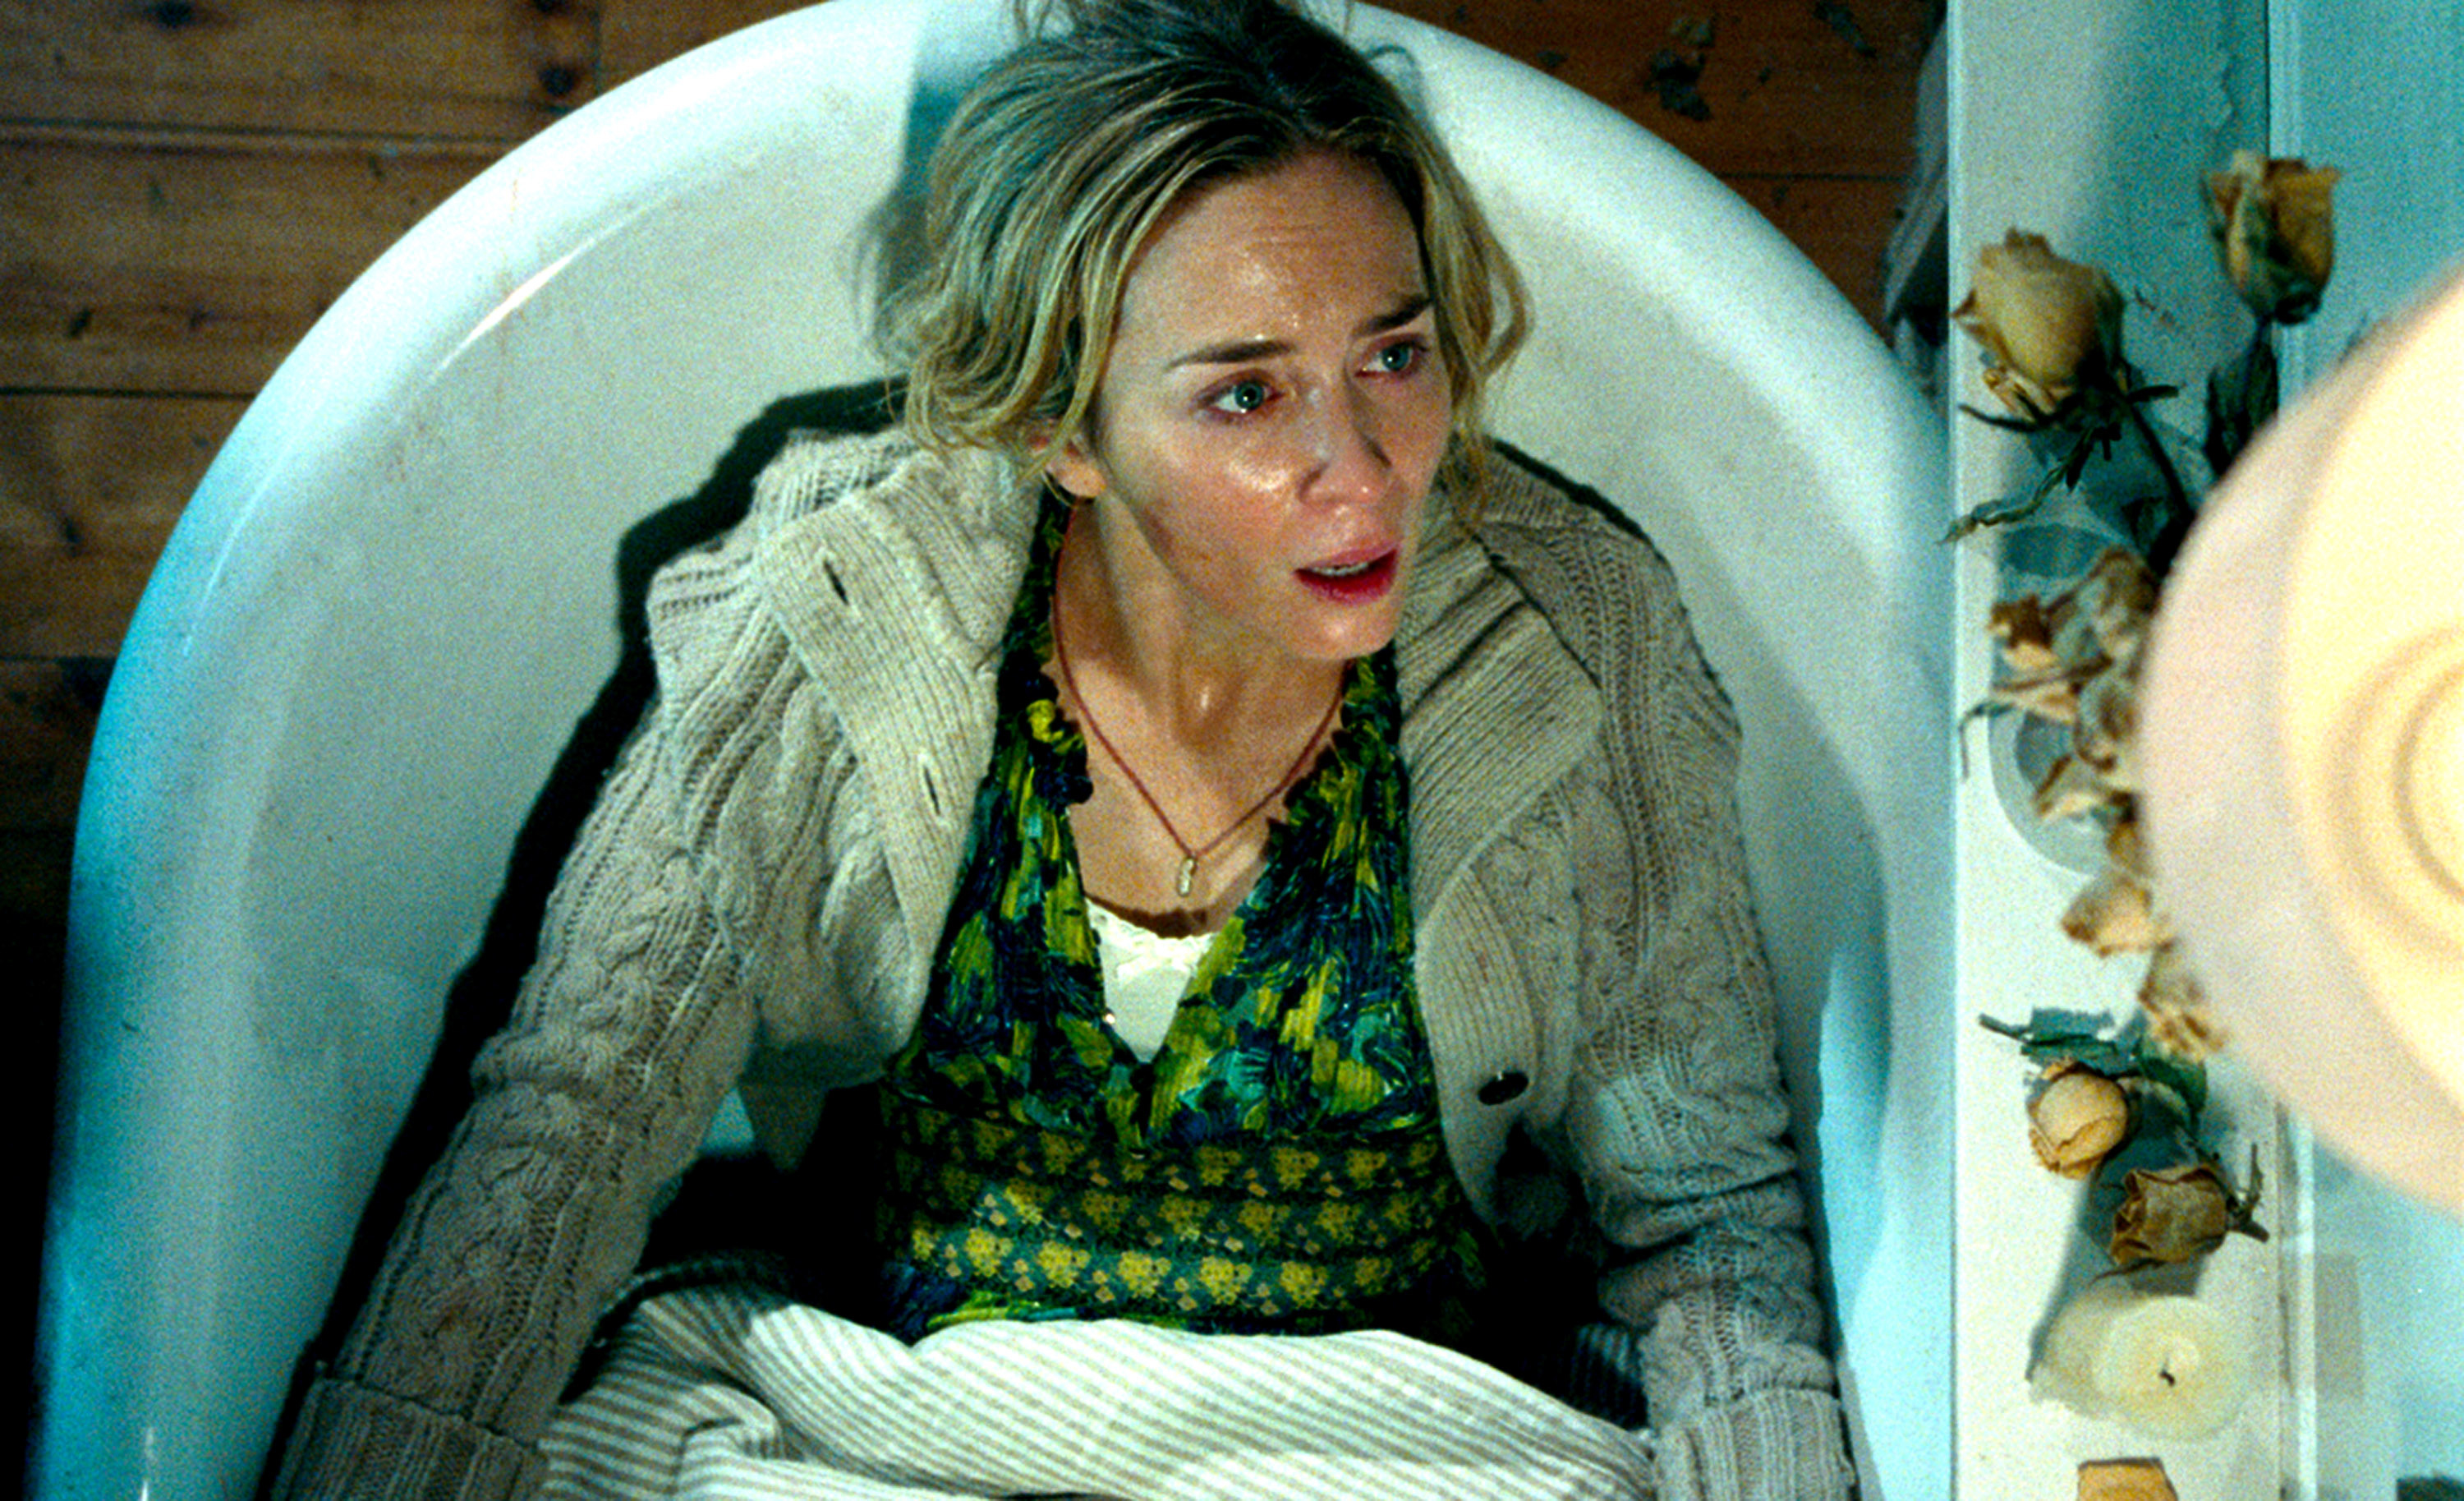 'A Quiet Place' starring Emily Blunt is one creepy trailer